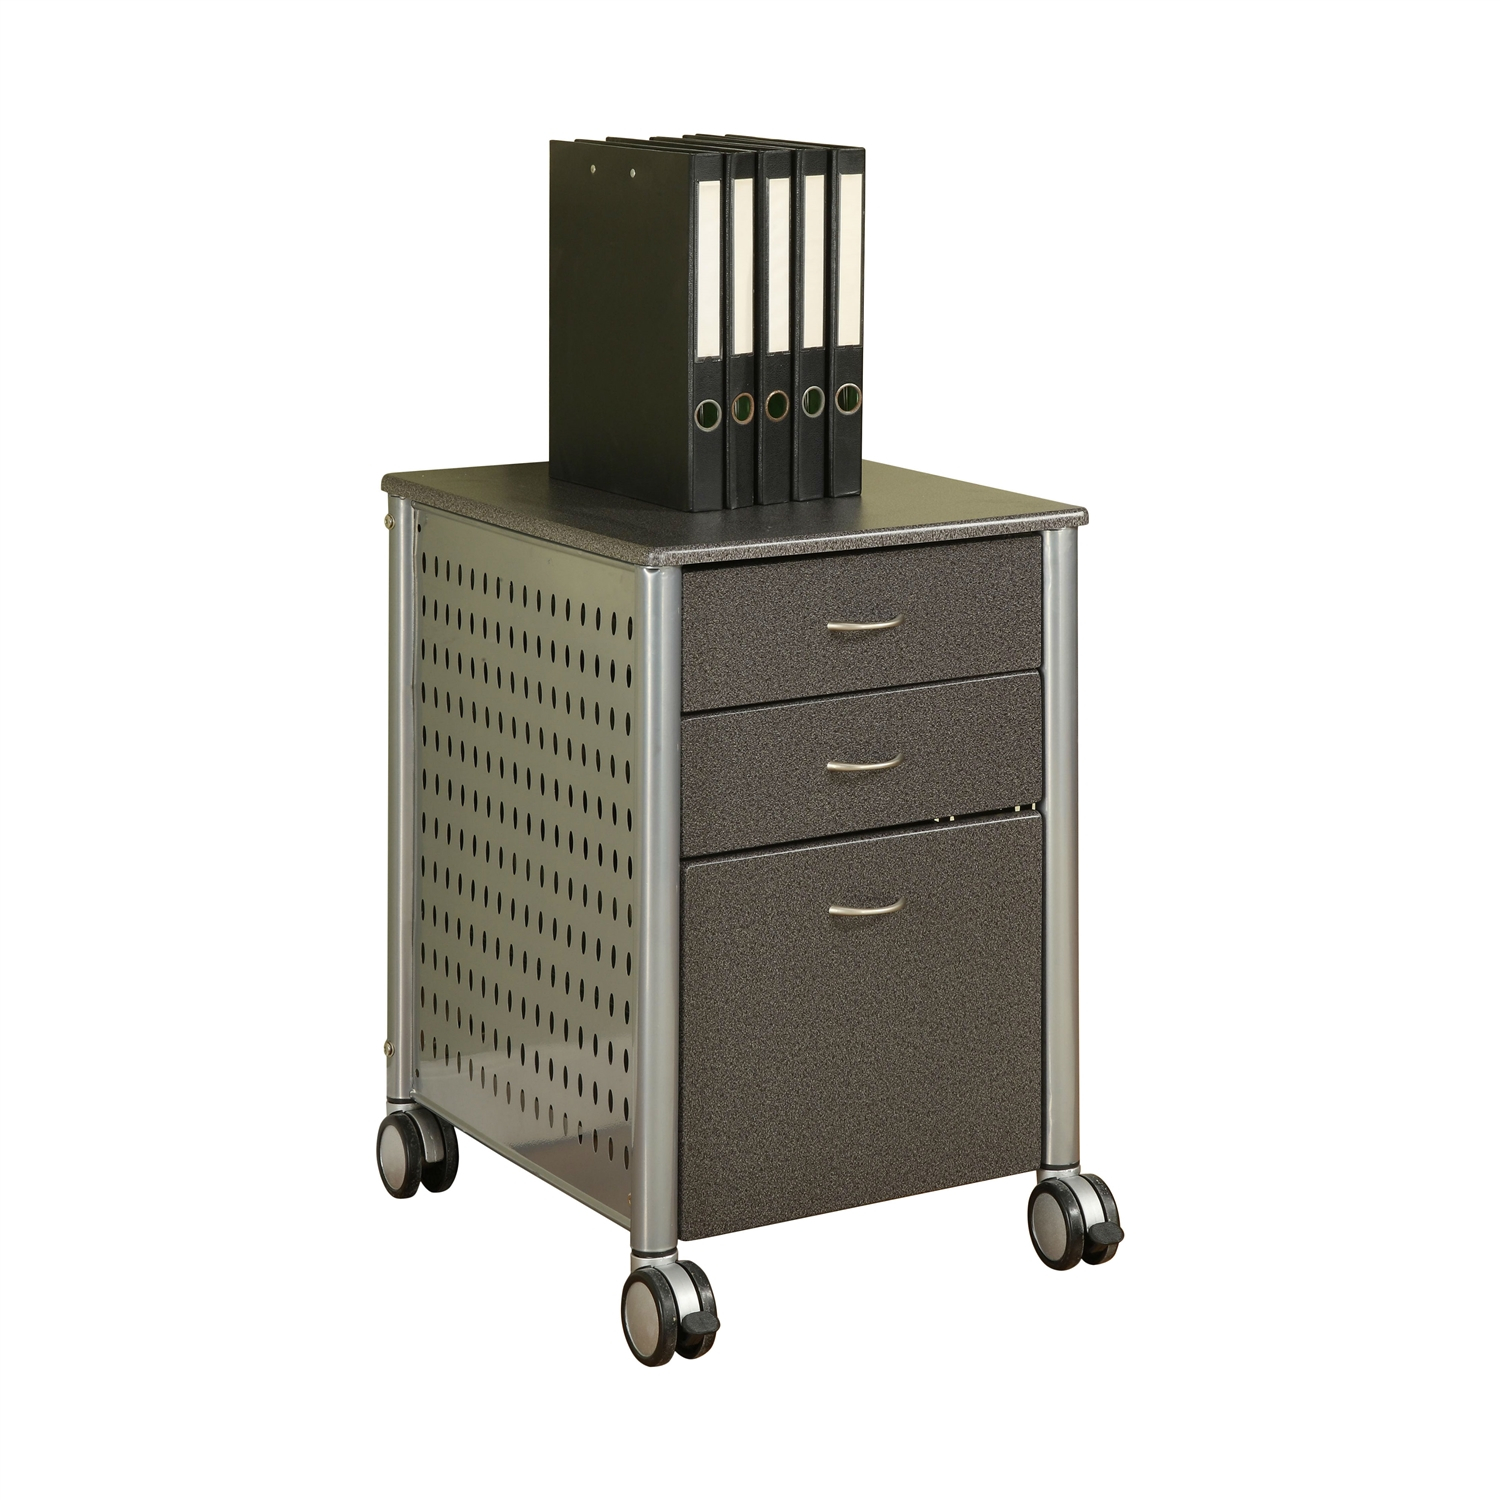 Mobile Filing Cabinet Printer Stand With 2 Office Storage Drawers pertaining to dimensions 1500 X 1500